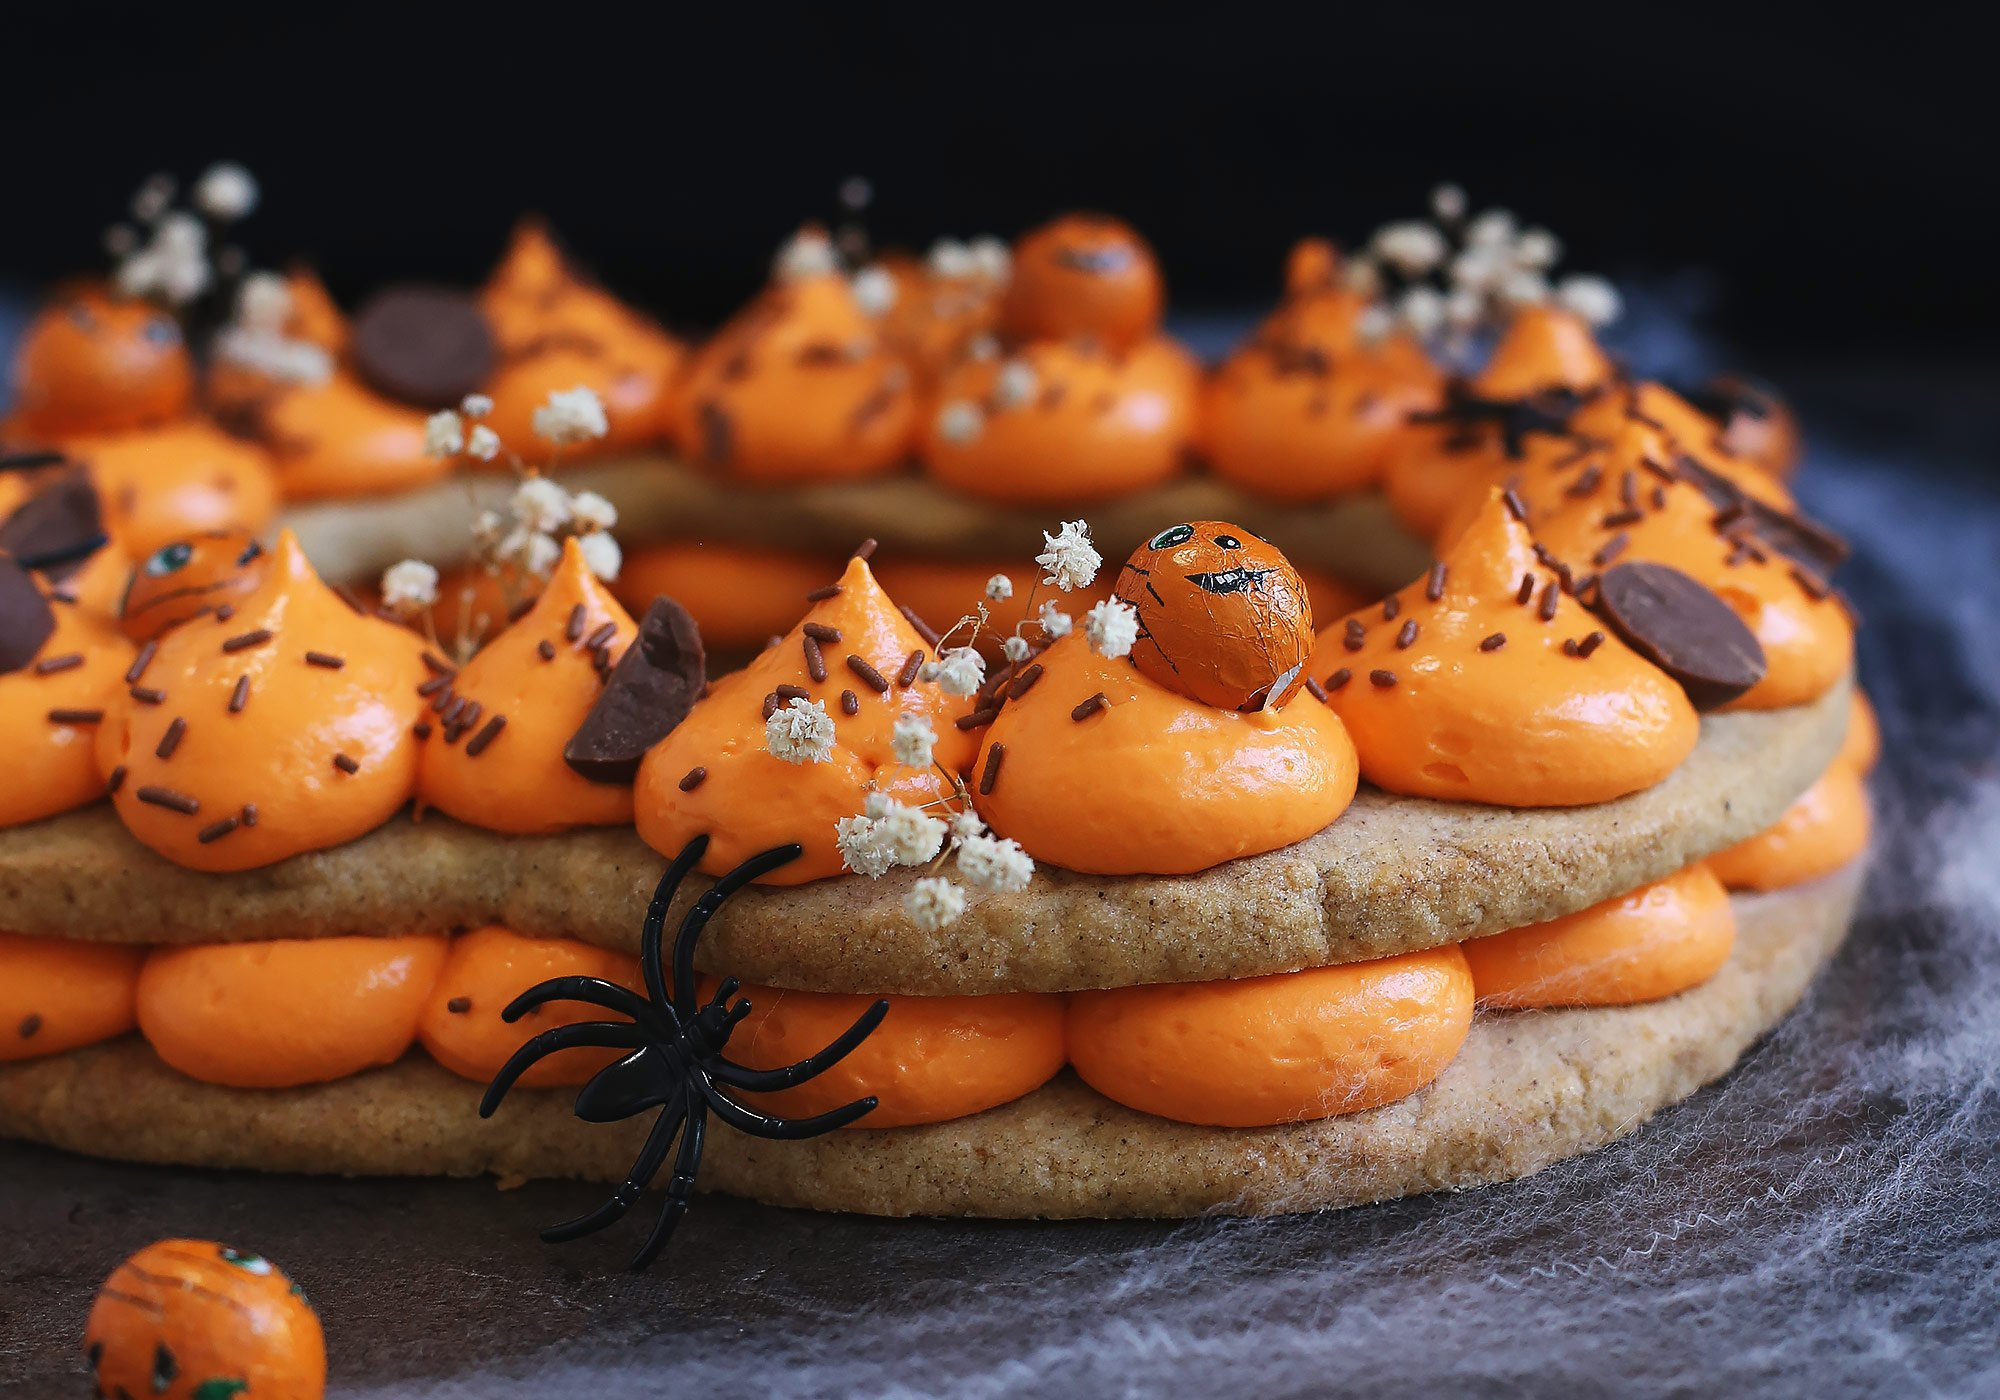 Example of a Halloween version of the cream tart